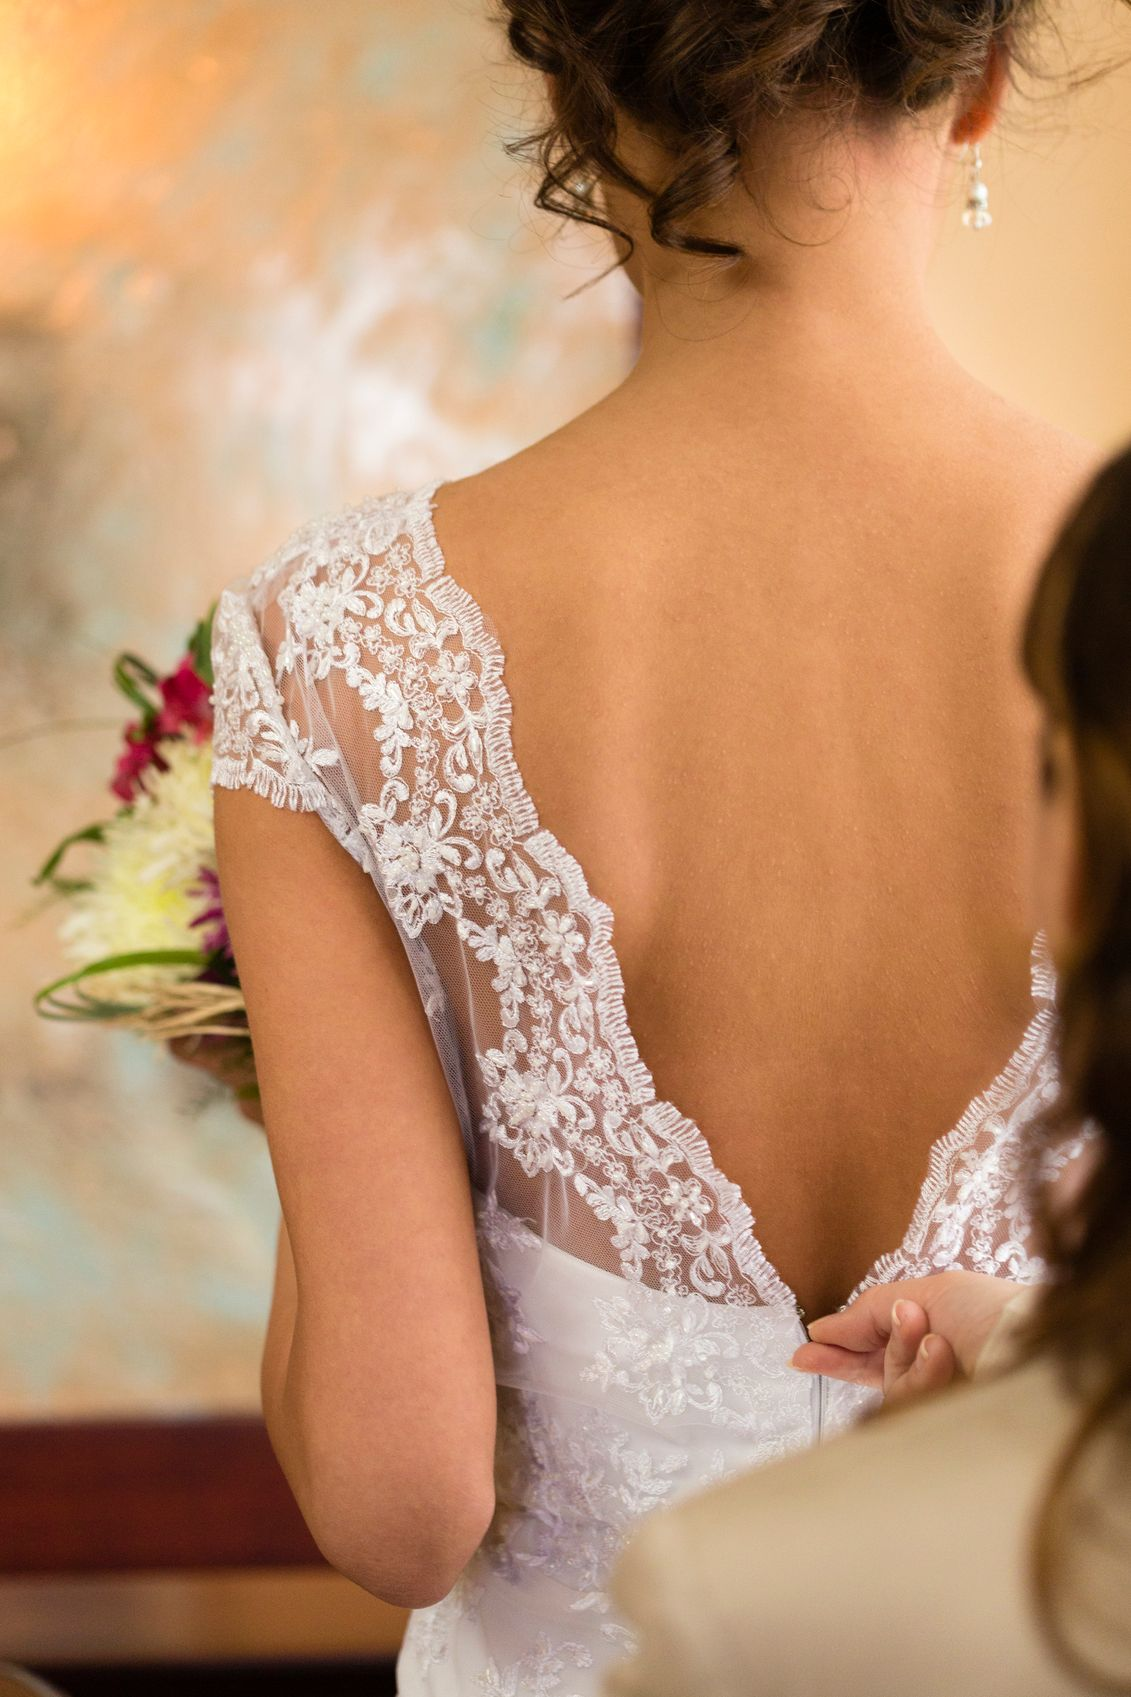 The Bride's Guide to Finding the Perfect Wedding Dress Image 7